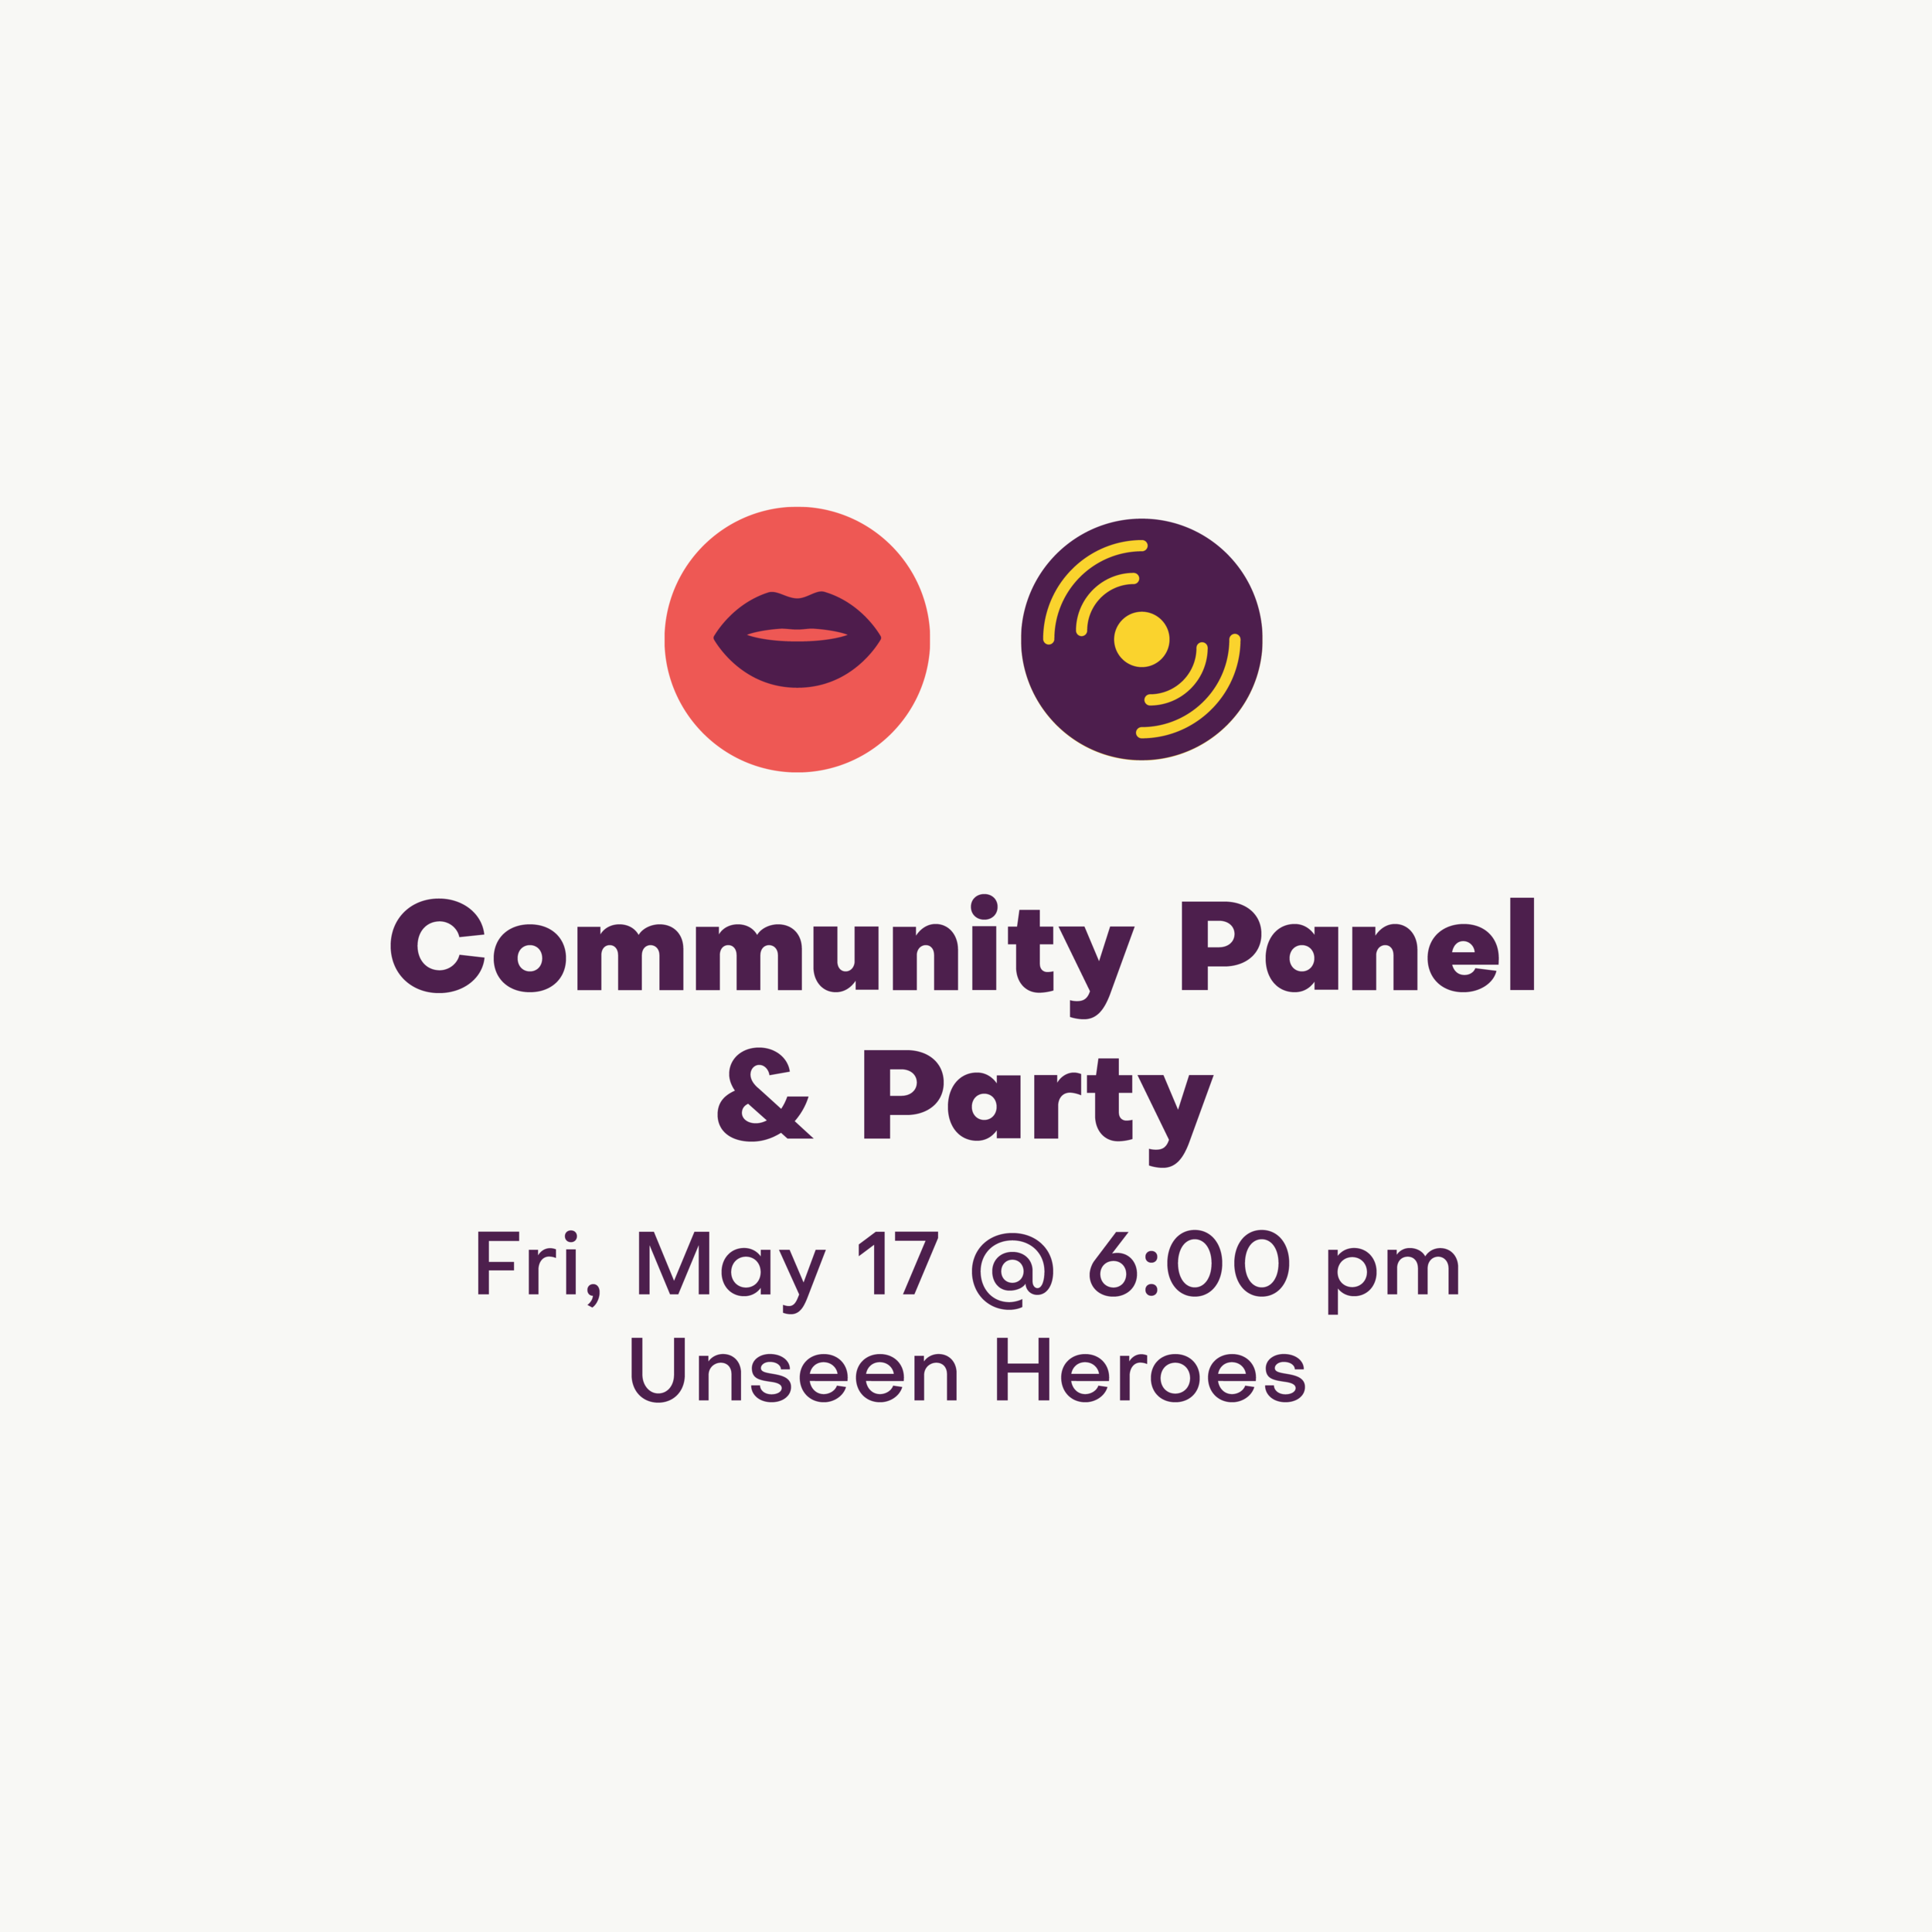 Community Panel & Party-01.png